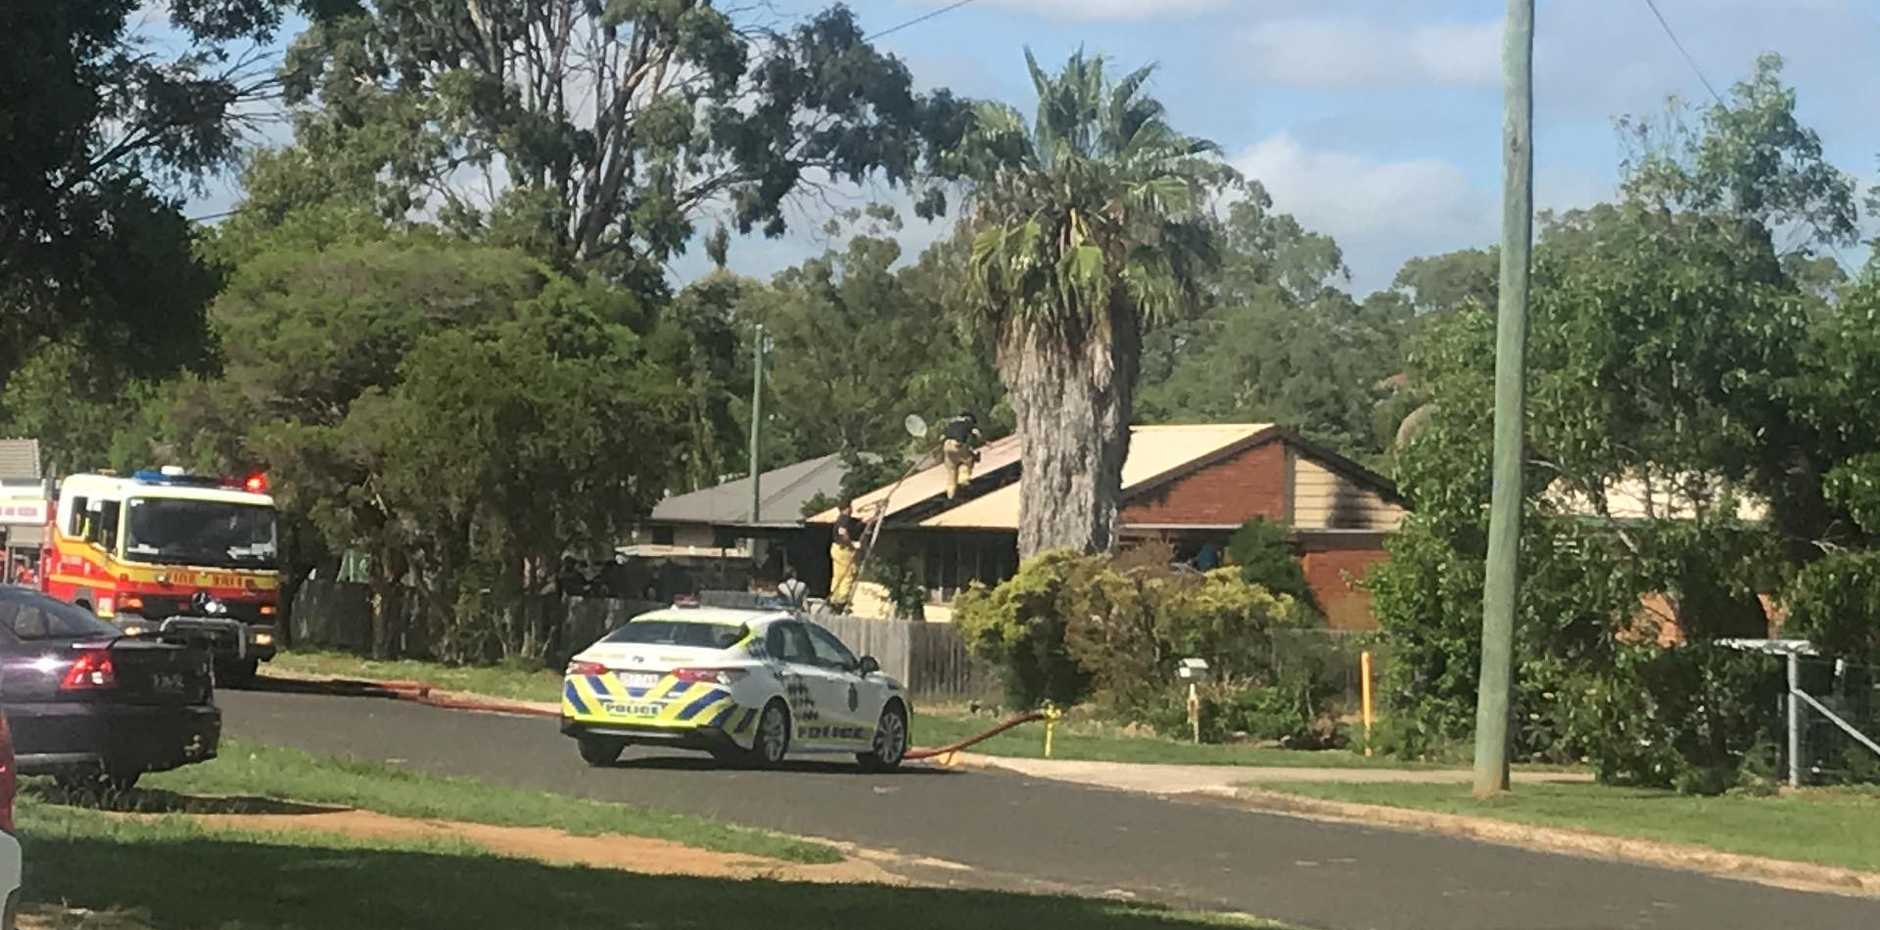 A Prince St Kingaroy home has been engulfed by flames in an early morning house fire on March 1, 2020. (Picture: Laura Blackmore)